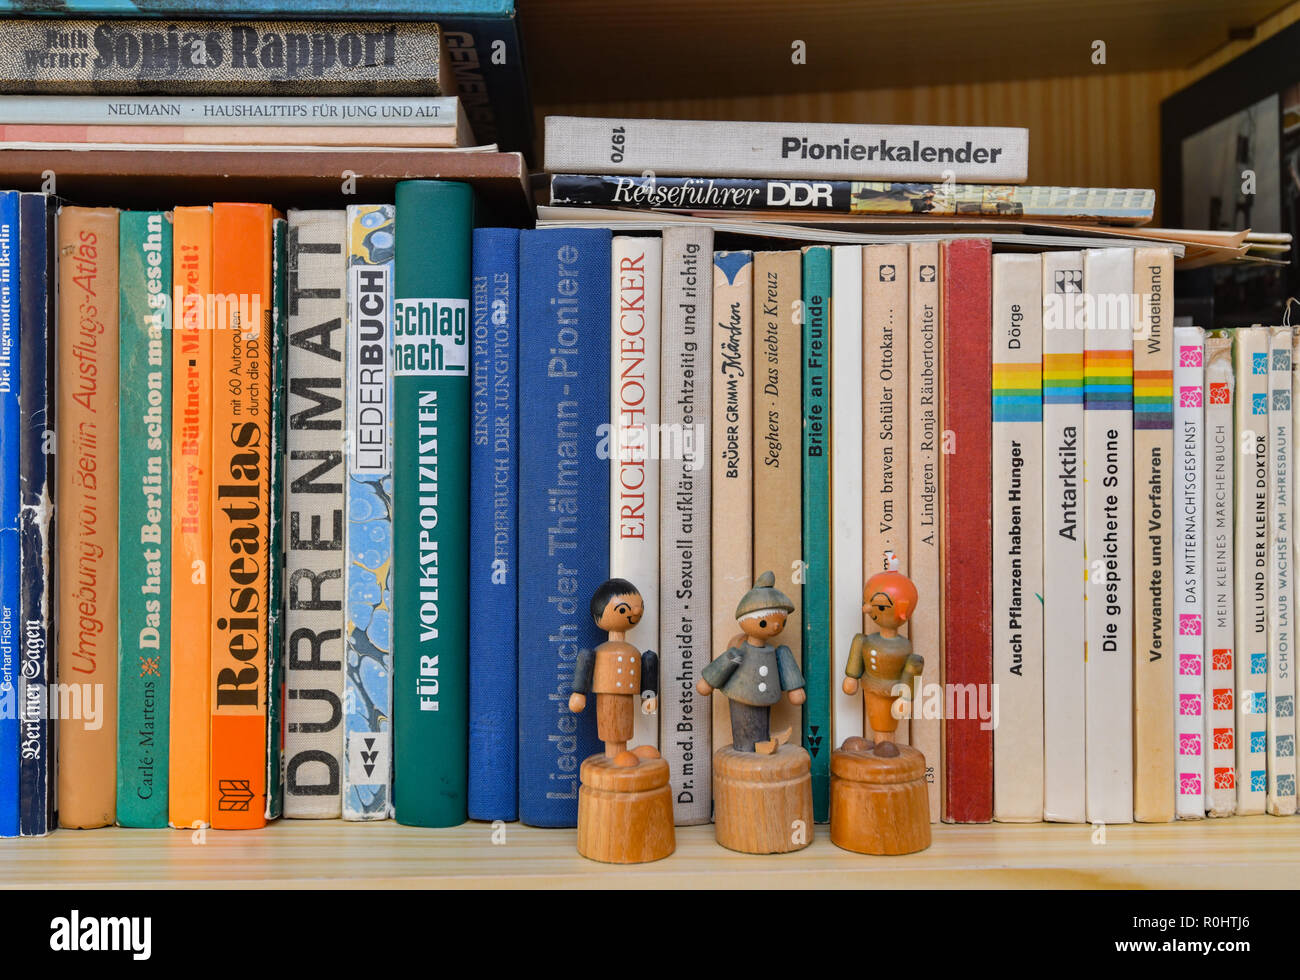 05th Nov 2018 A Bookshelf In The GDR Bungalow Type